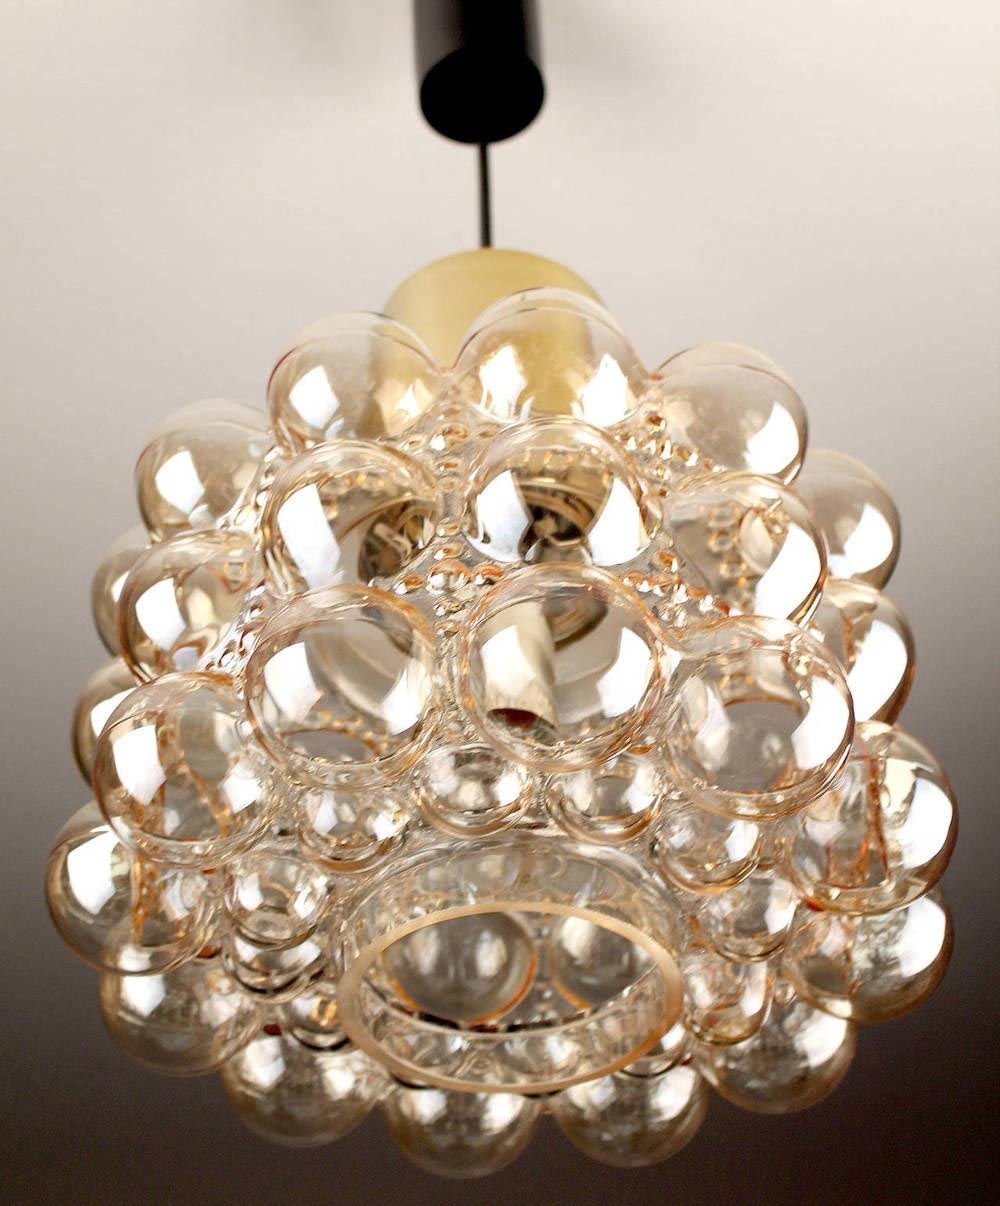 Murano glass bubble chandelier chandeliers pinterest murano murano glass bubble chandelier aloadofball Choice Image